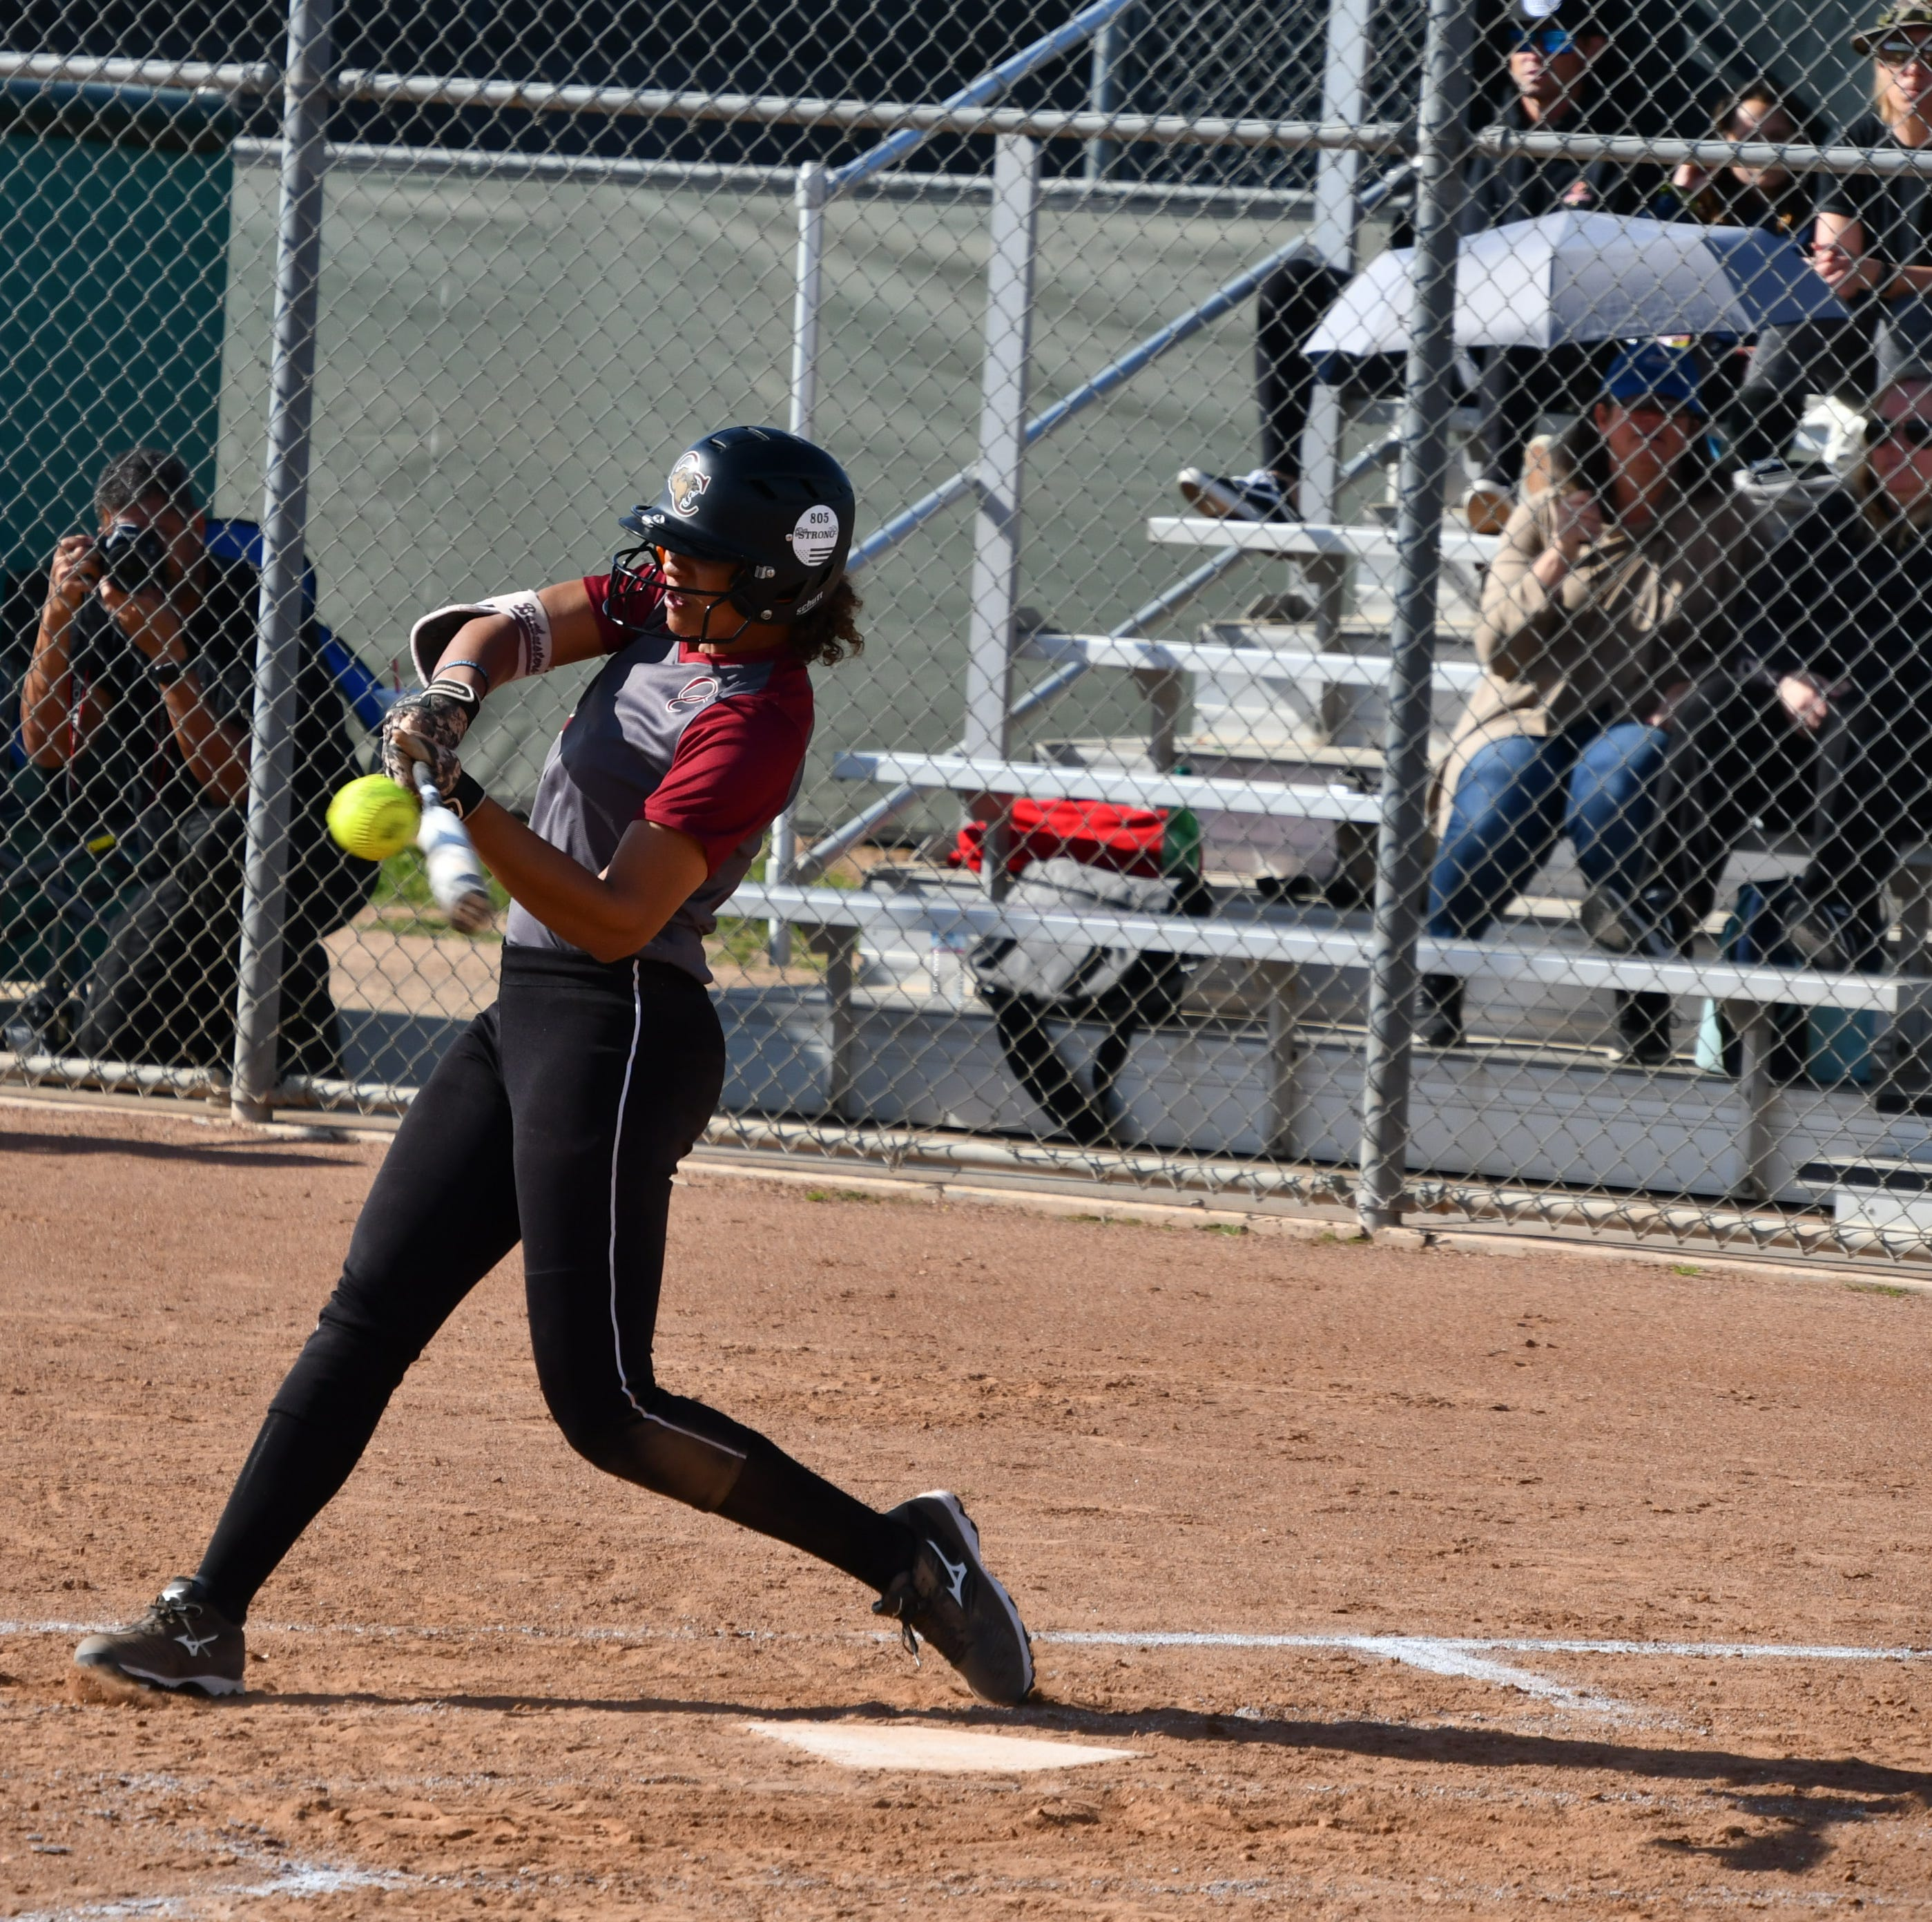 Oaks Christian, Camarillo to face off in Division 1 as CIF-SS releases softball pairings